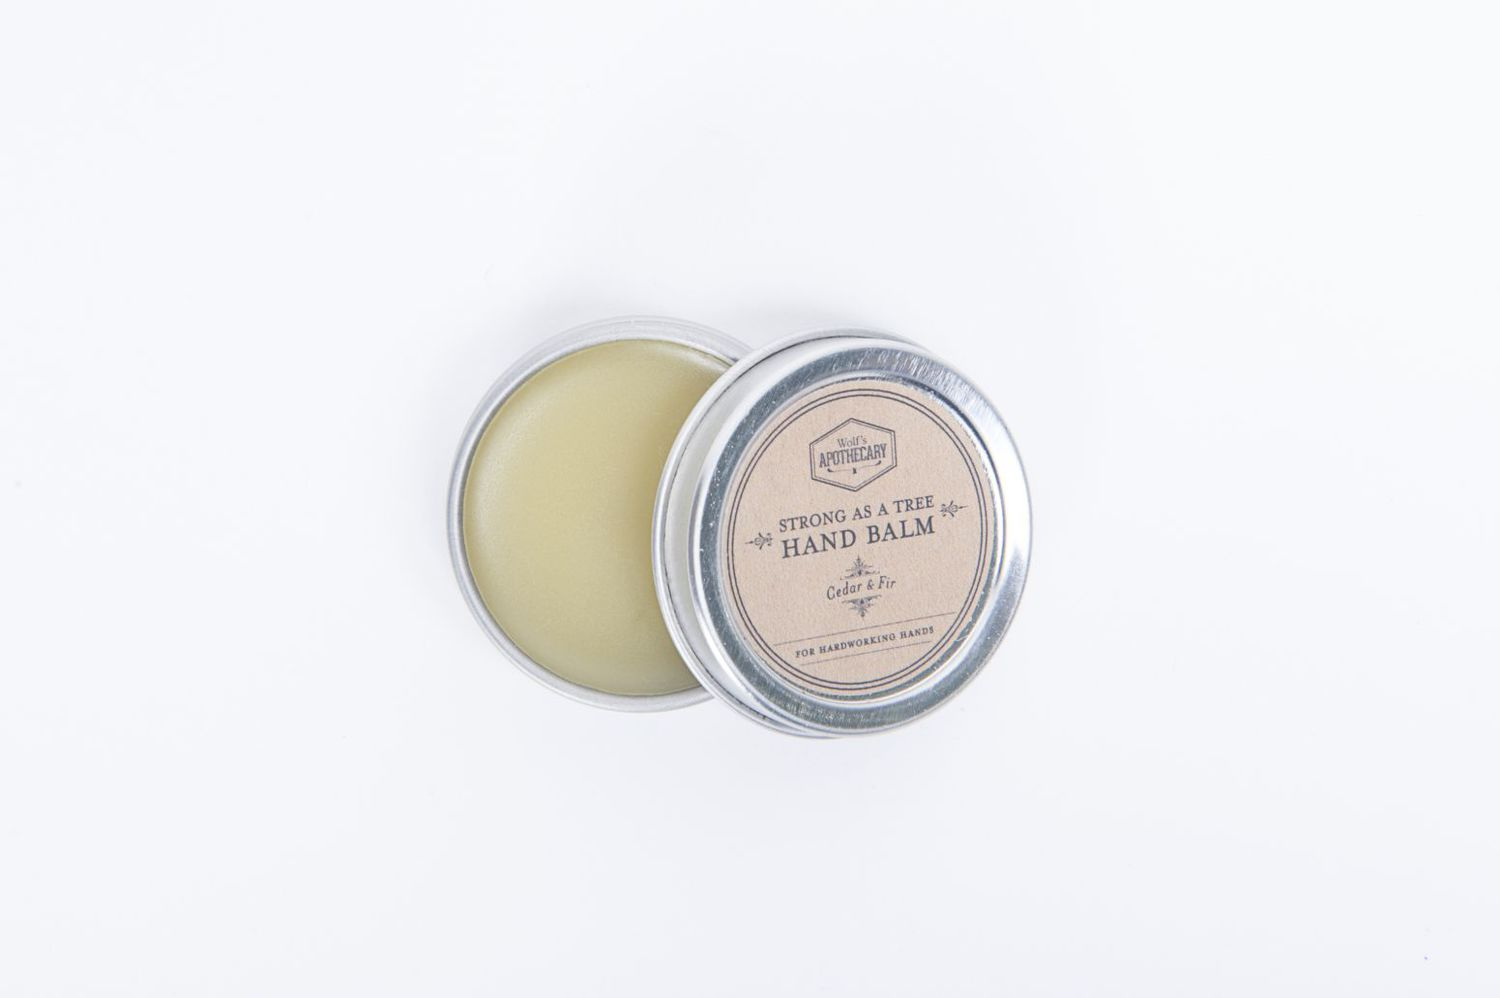 Strong as a Tree Hand Balm by Wolf's Apothecary | Finds for Father Figures | Keeper & Co. Blog